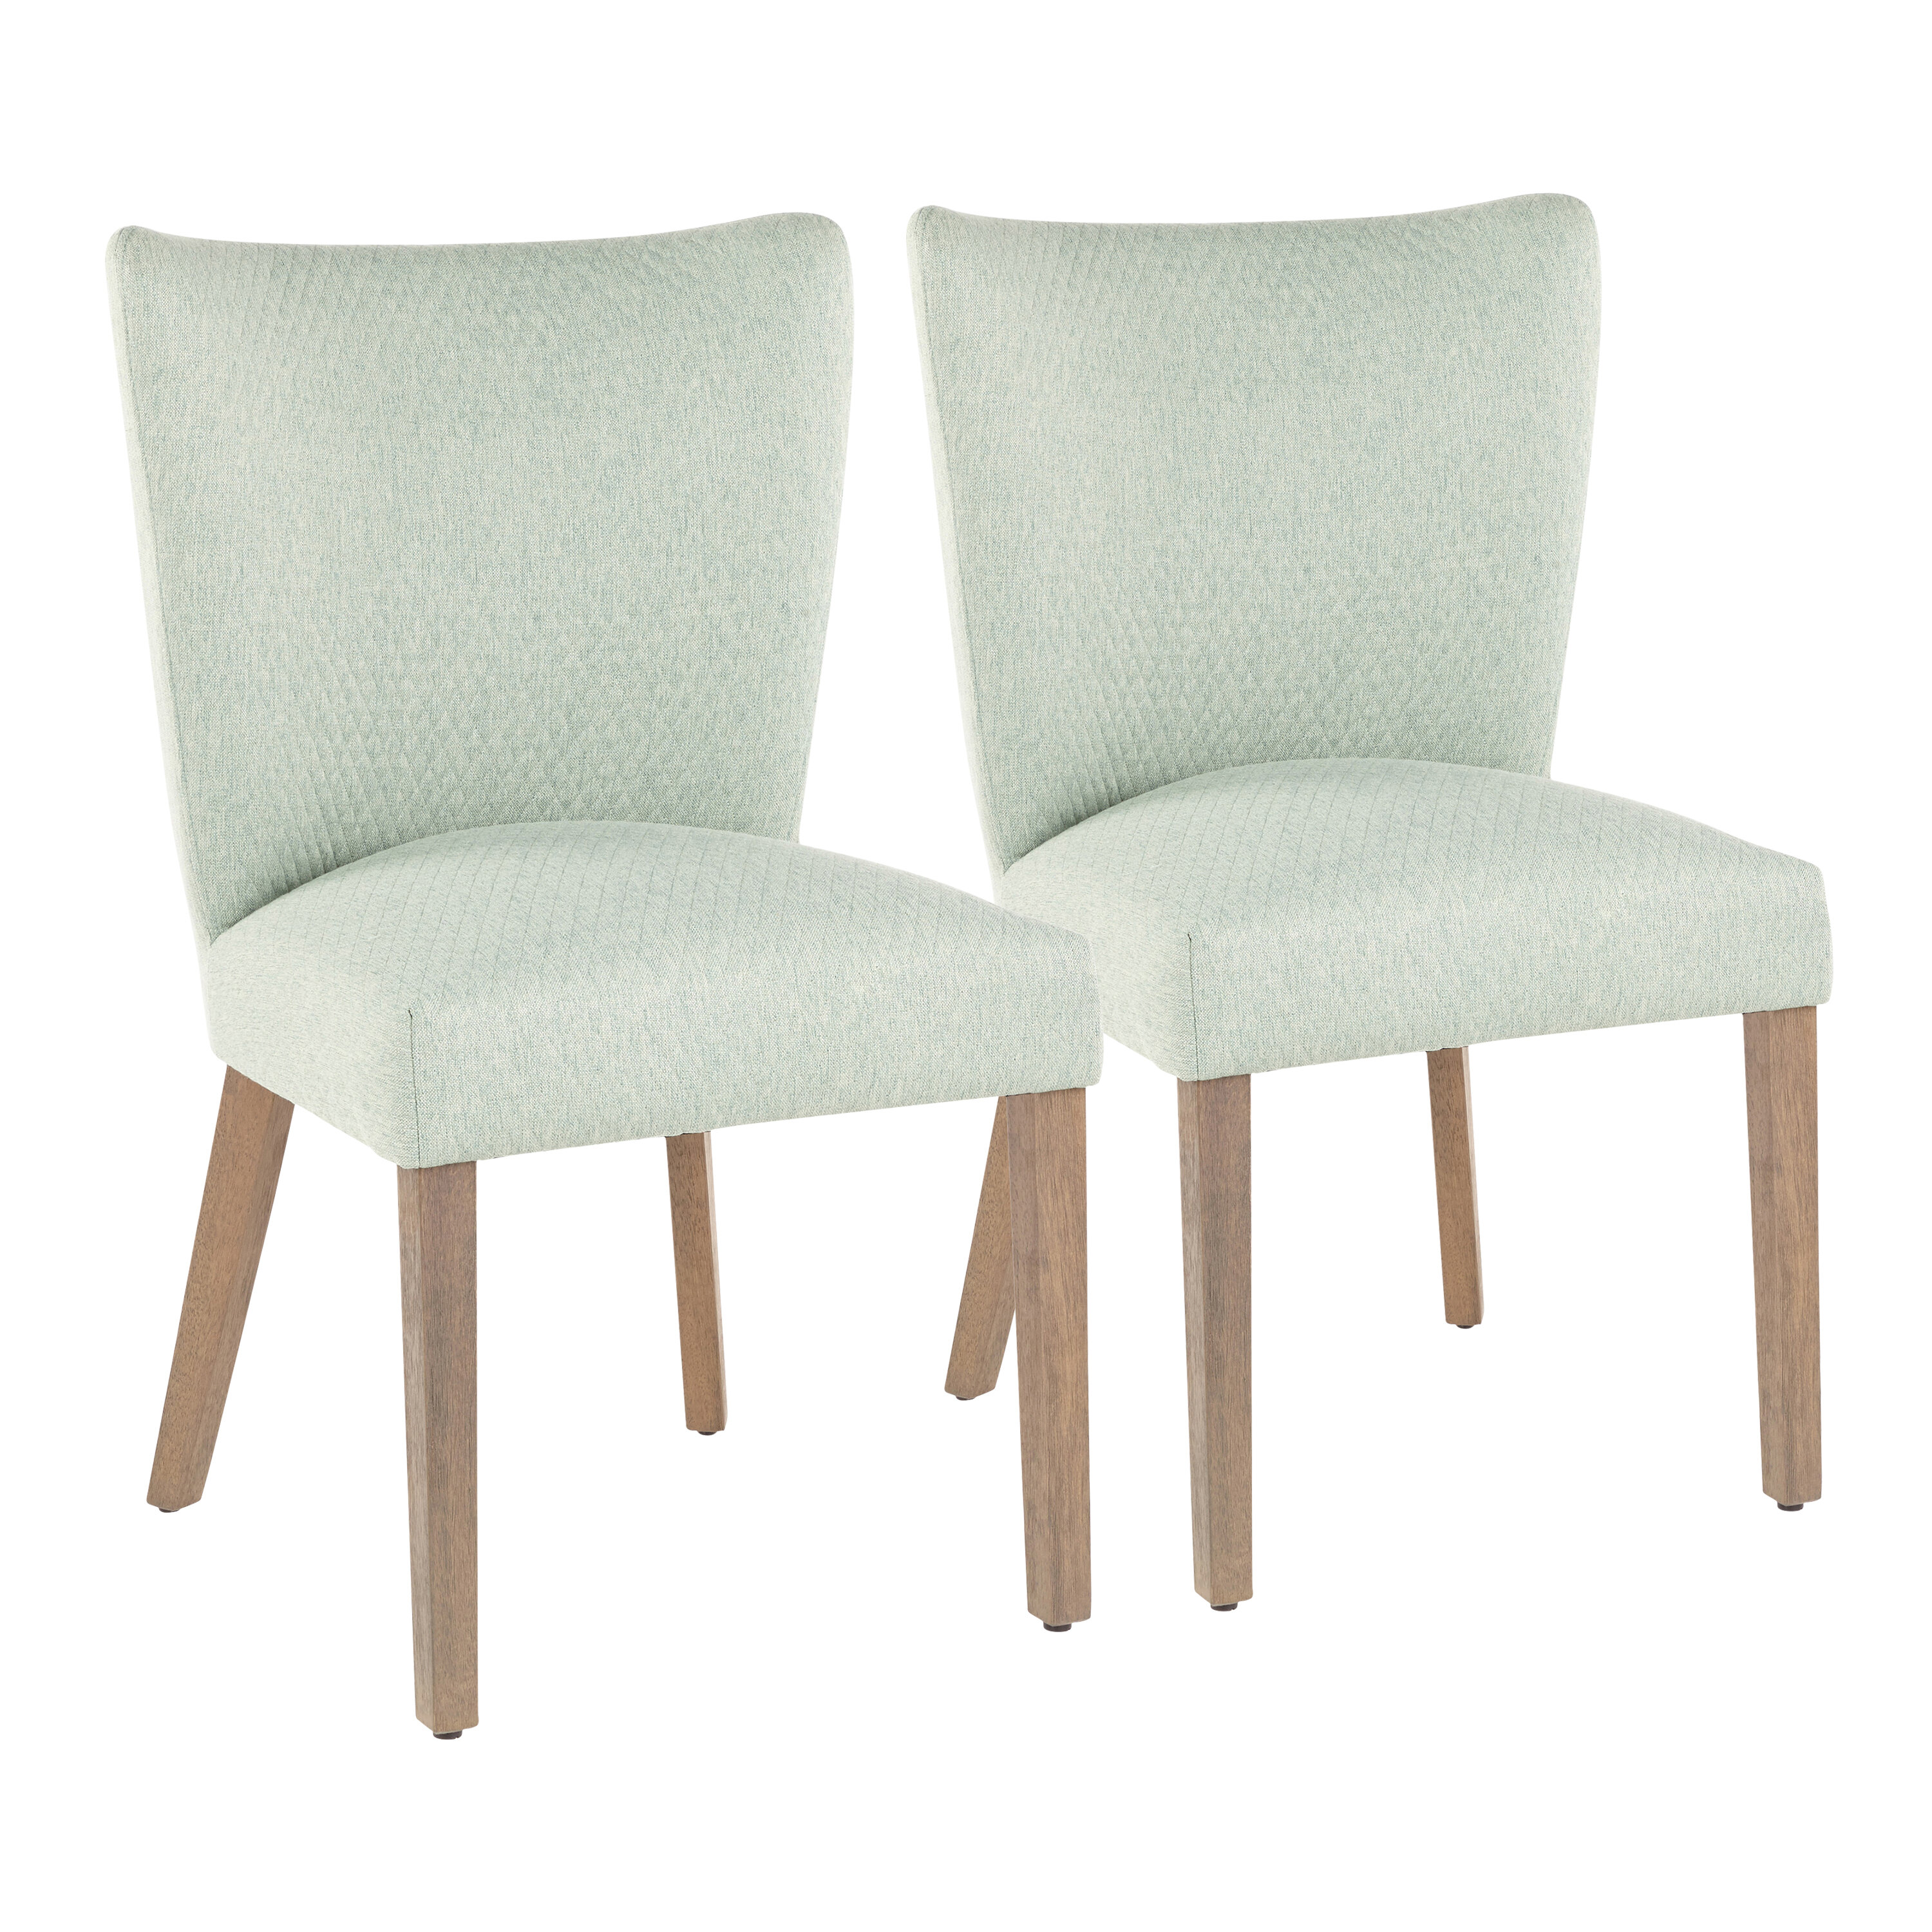 Natick Upholstered Dining Chair